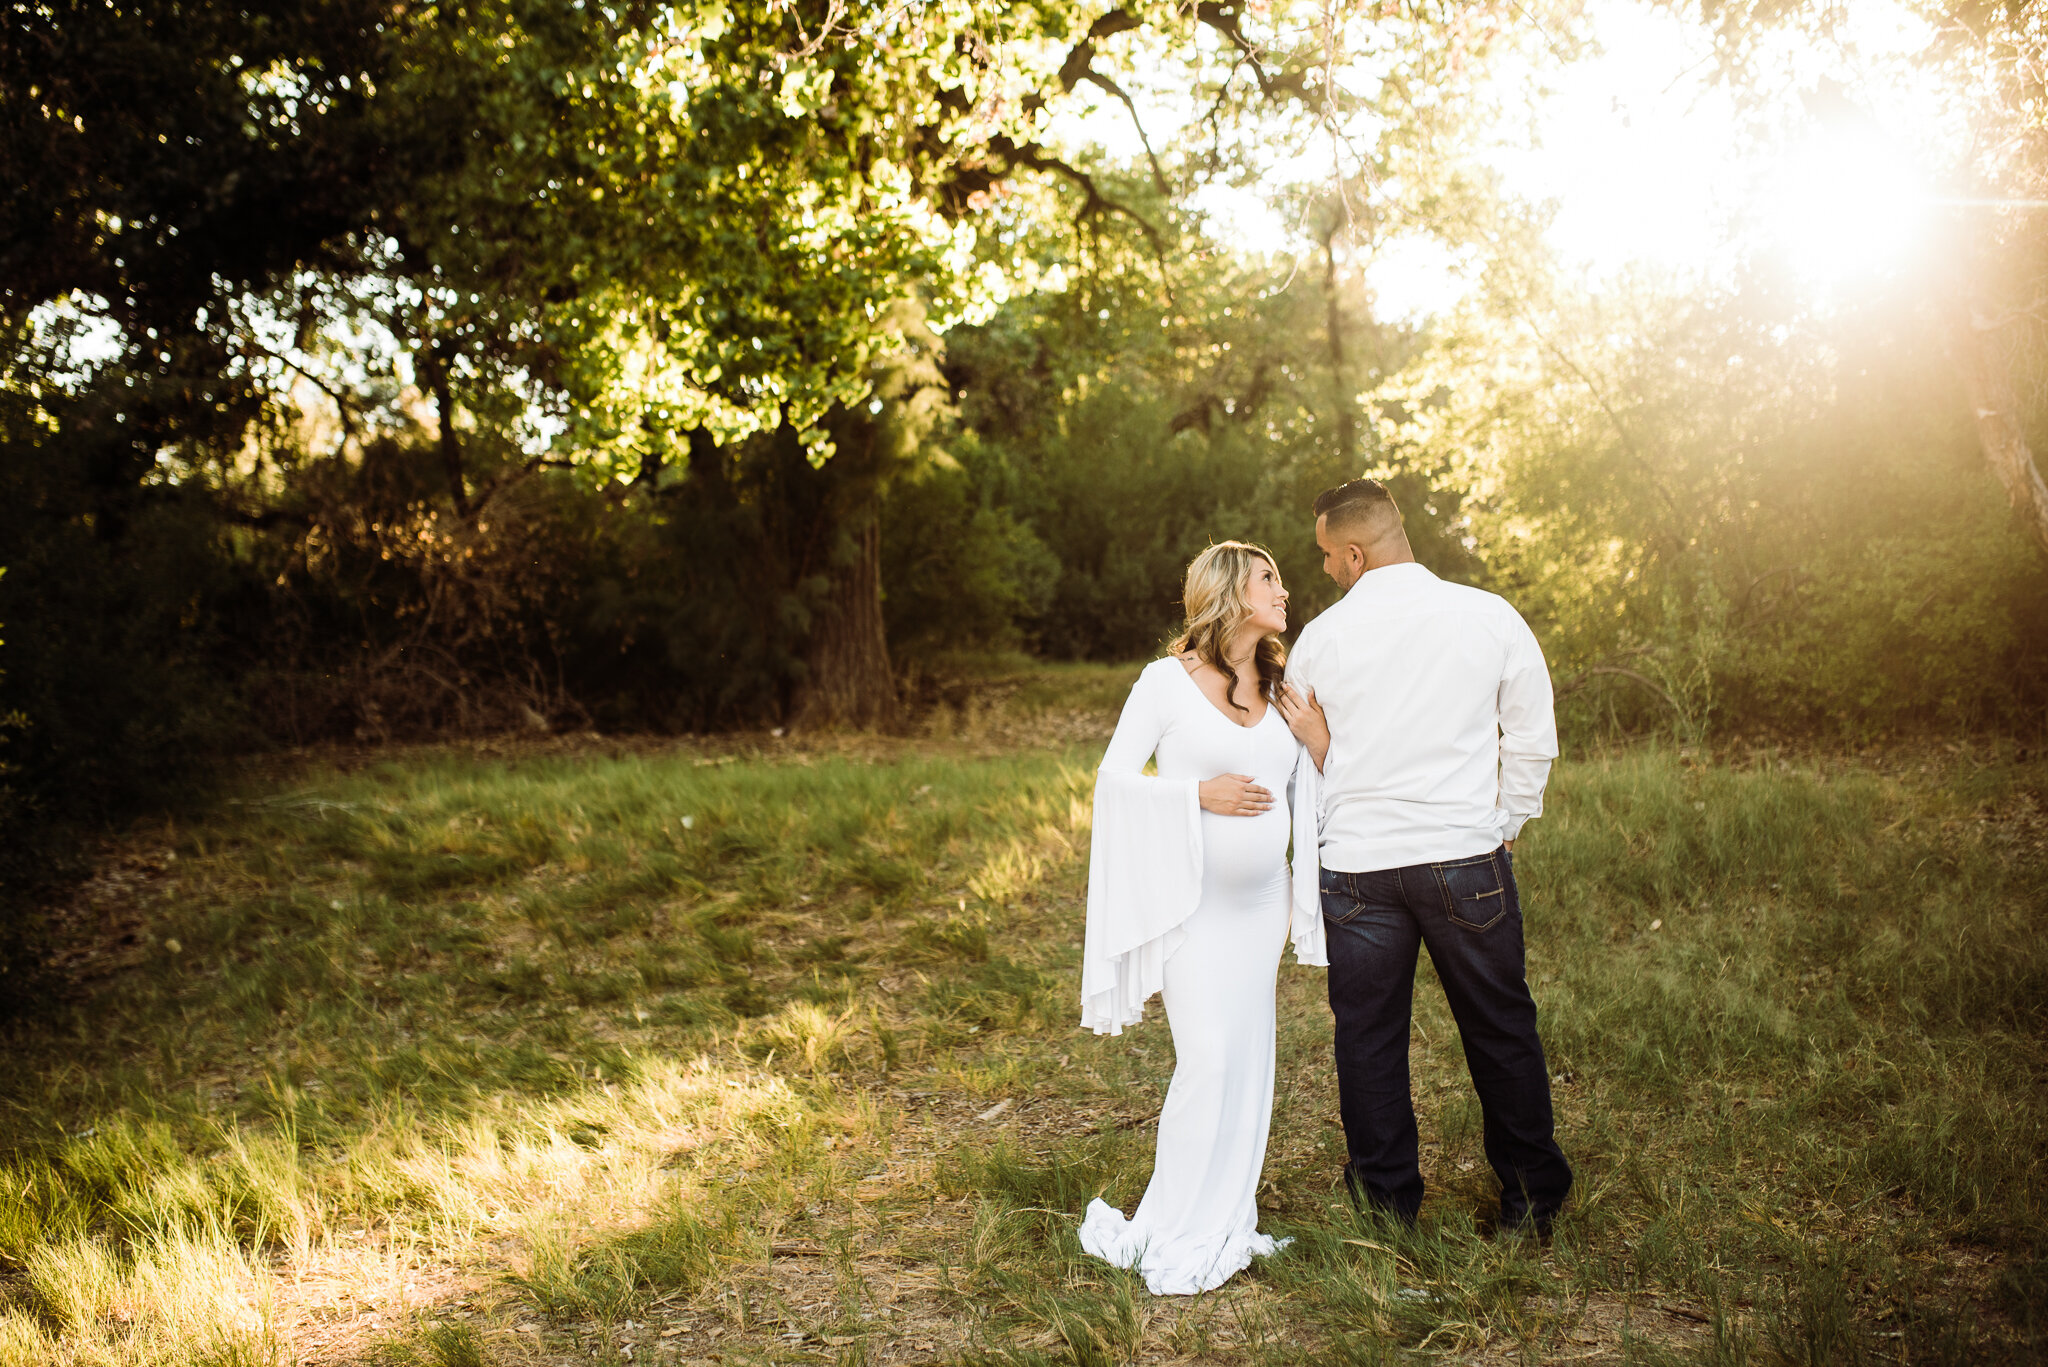 Albuquerque maternity photographer-10.jpg